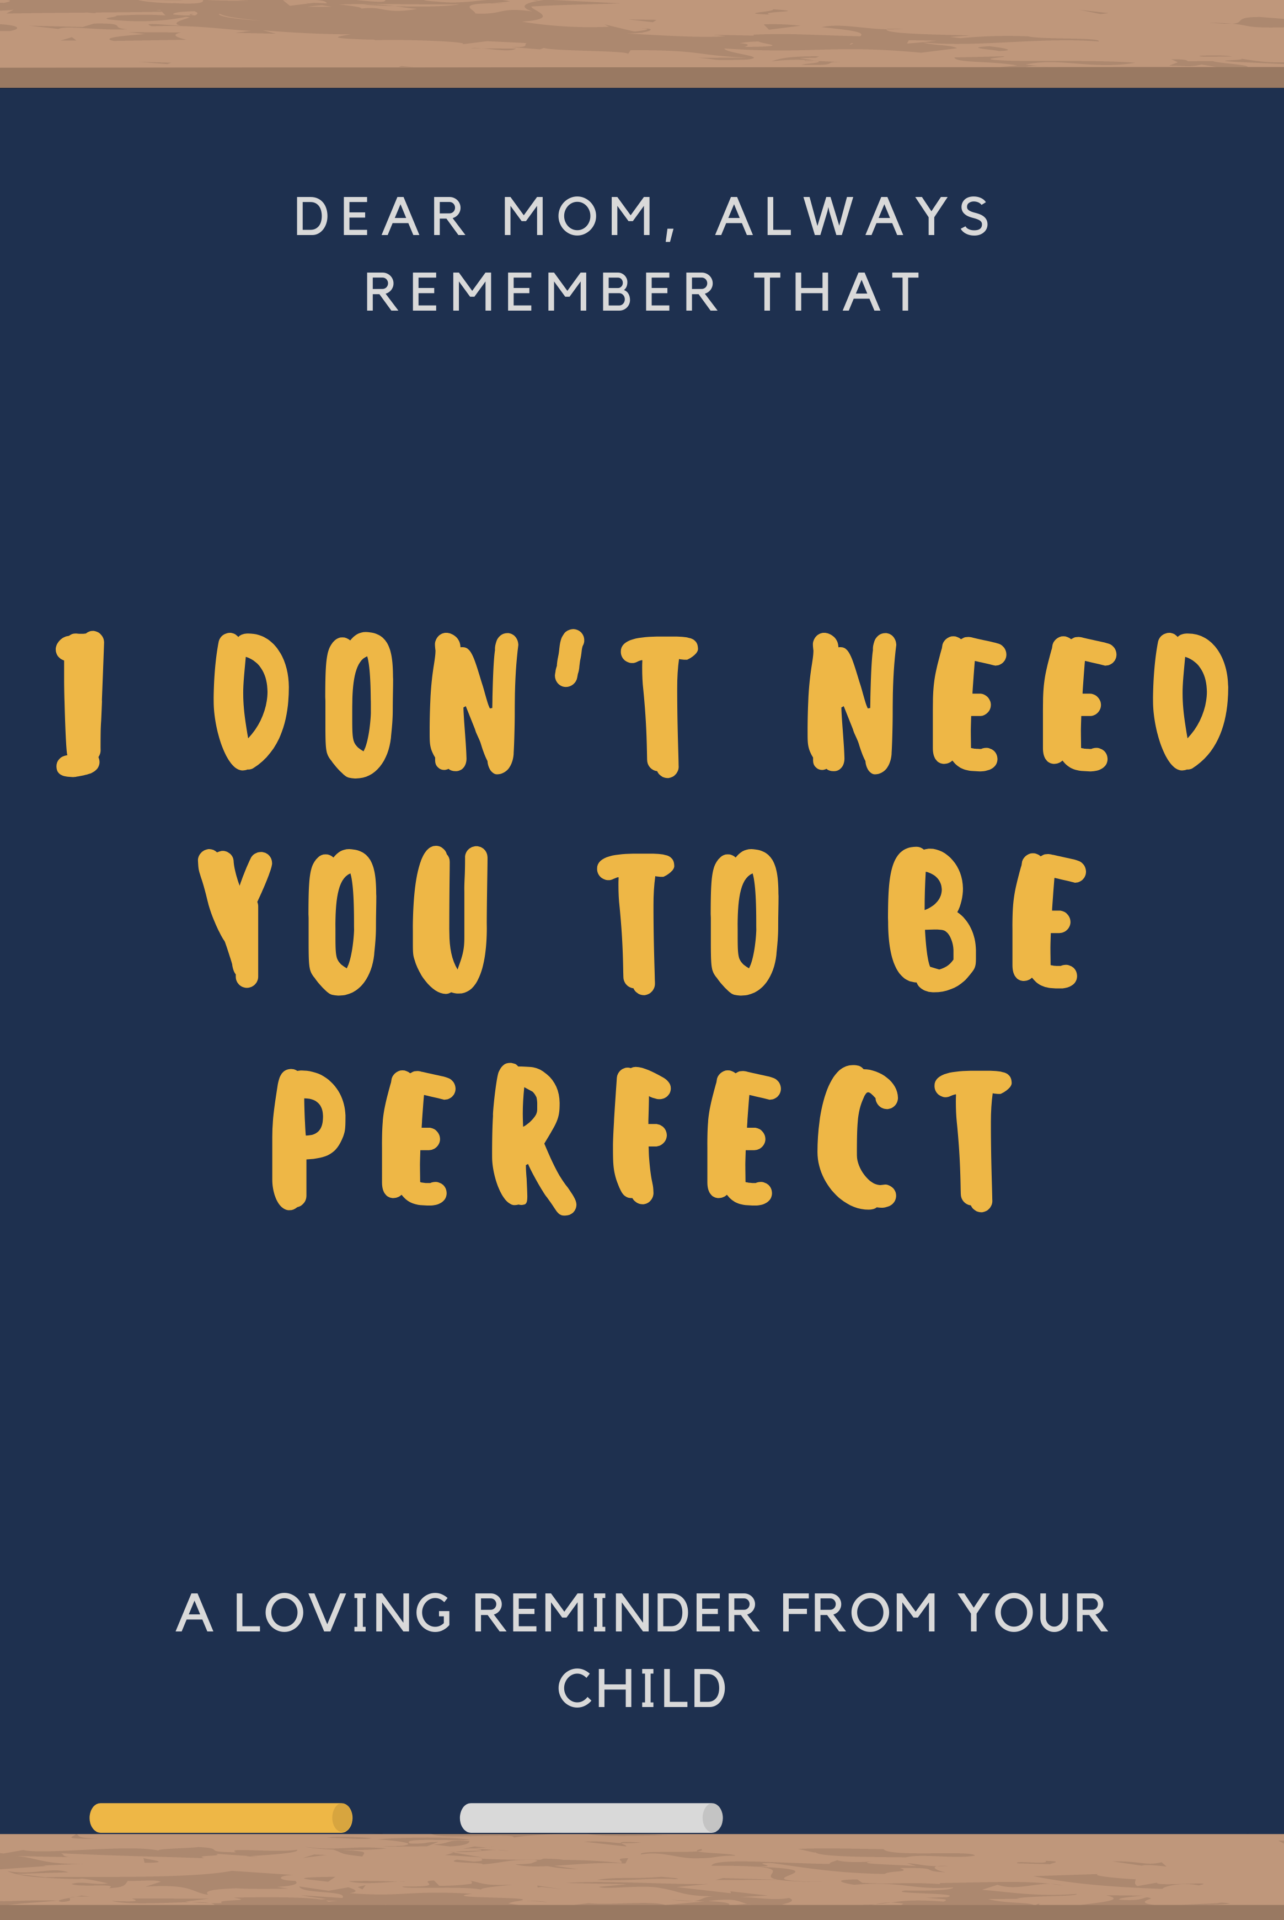 I don't need you to be perfect